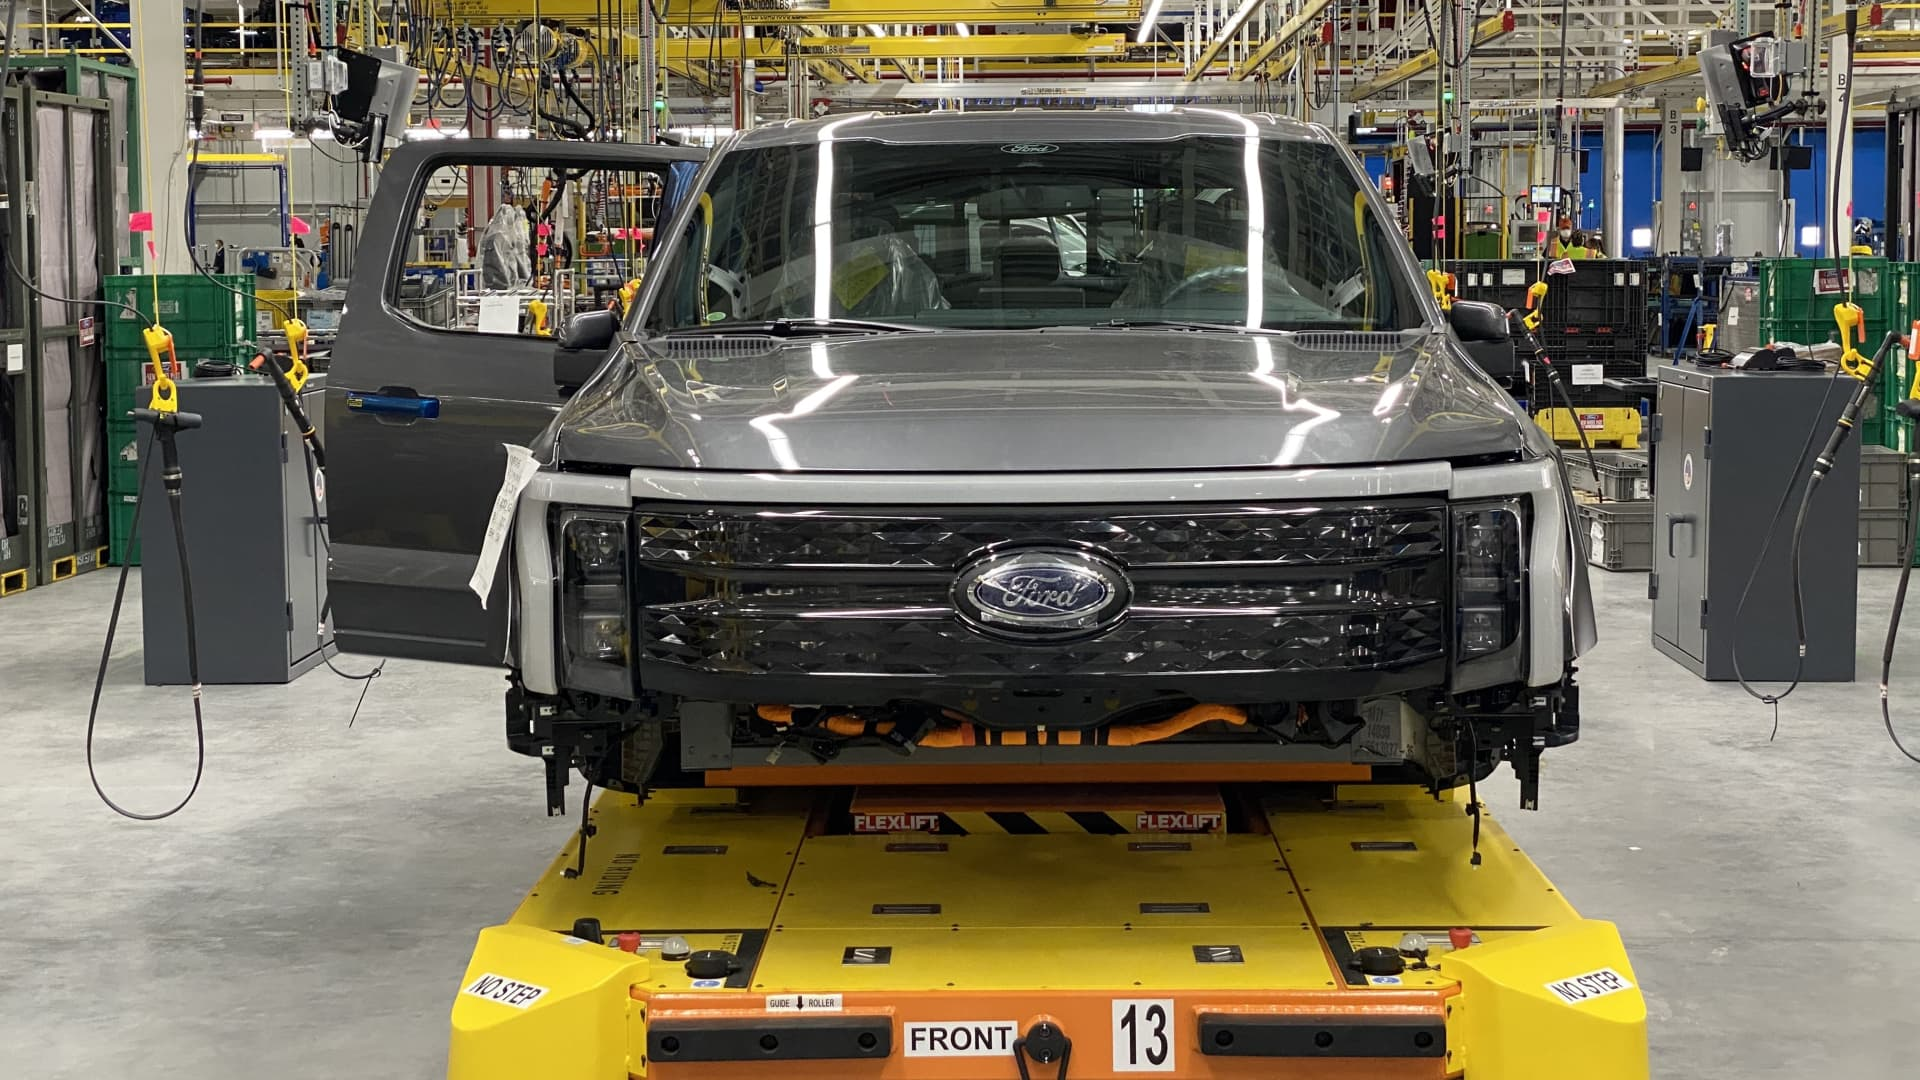 Ford has started initial pre-production of its electric F-150 Lightning pickup truck at a new plant in Dearborn, Mich.